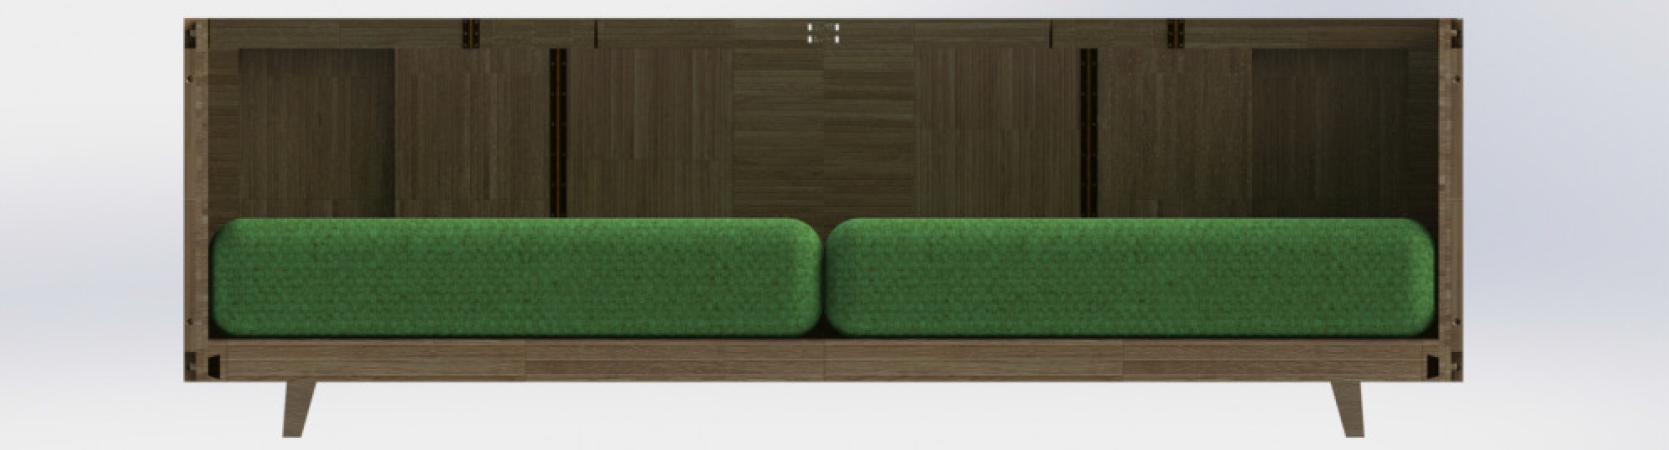 Small Spaces Seating 7